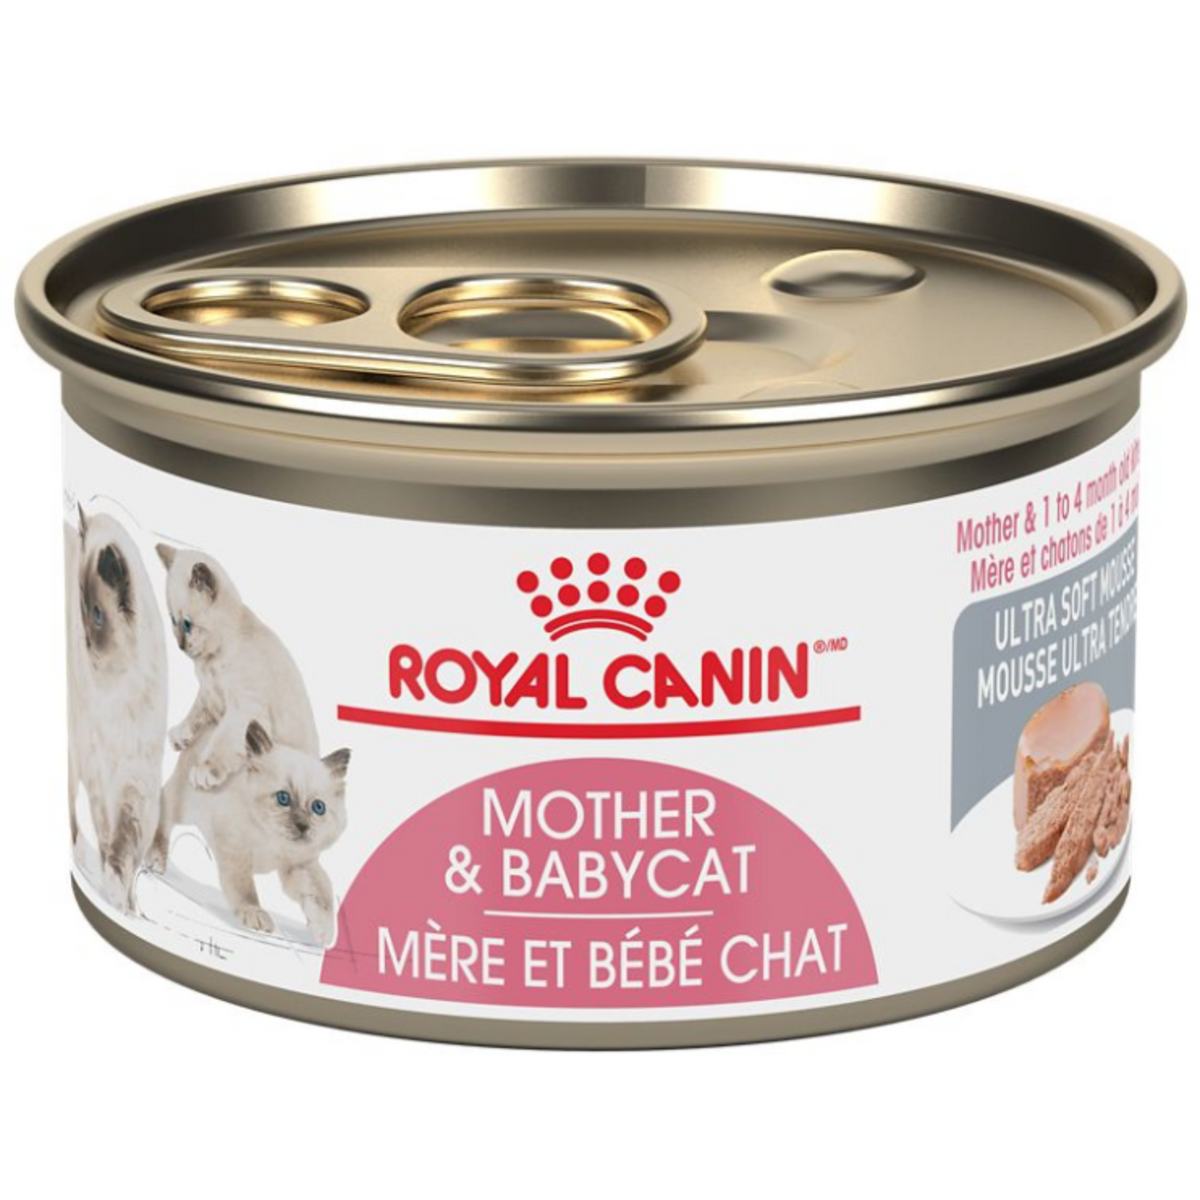 Royal Canin Mother & Babycat Ultra Soft Mousse (165g) - Wet Canned cat food